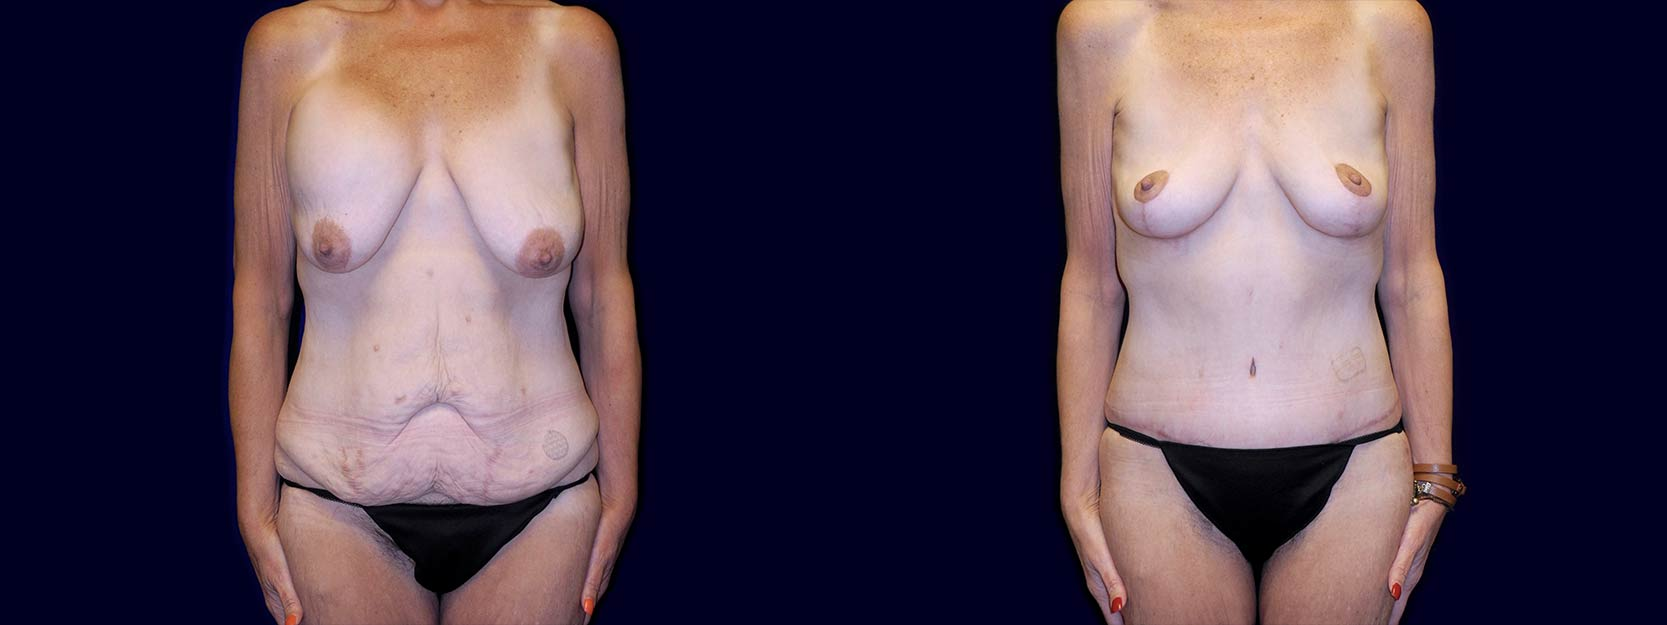 Frontal View - Surgery After Weight Loss - Breast Lift & Tummy Tuck